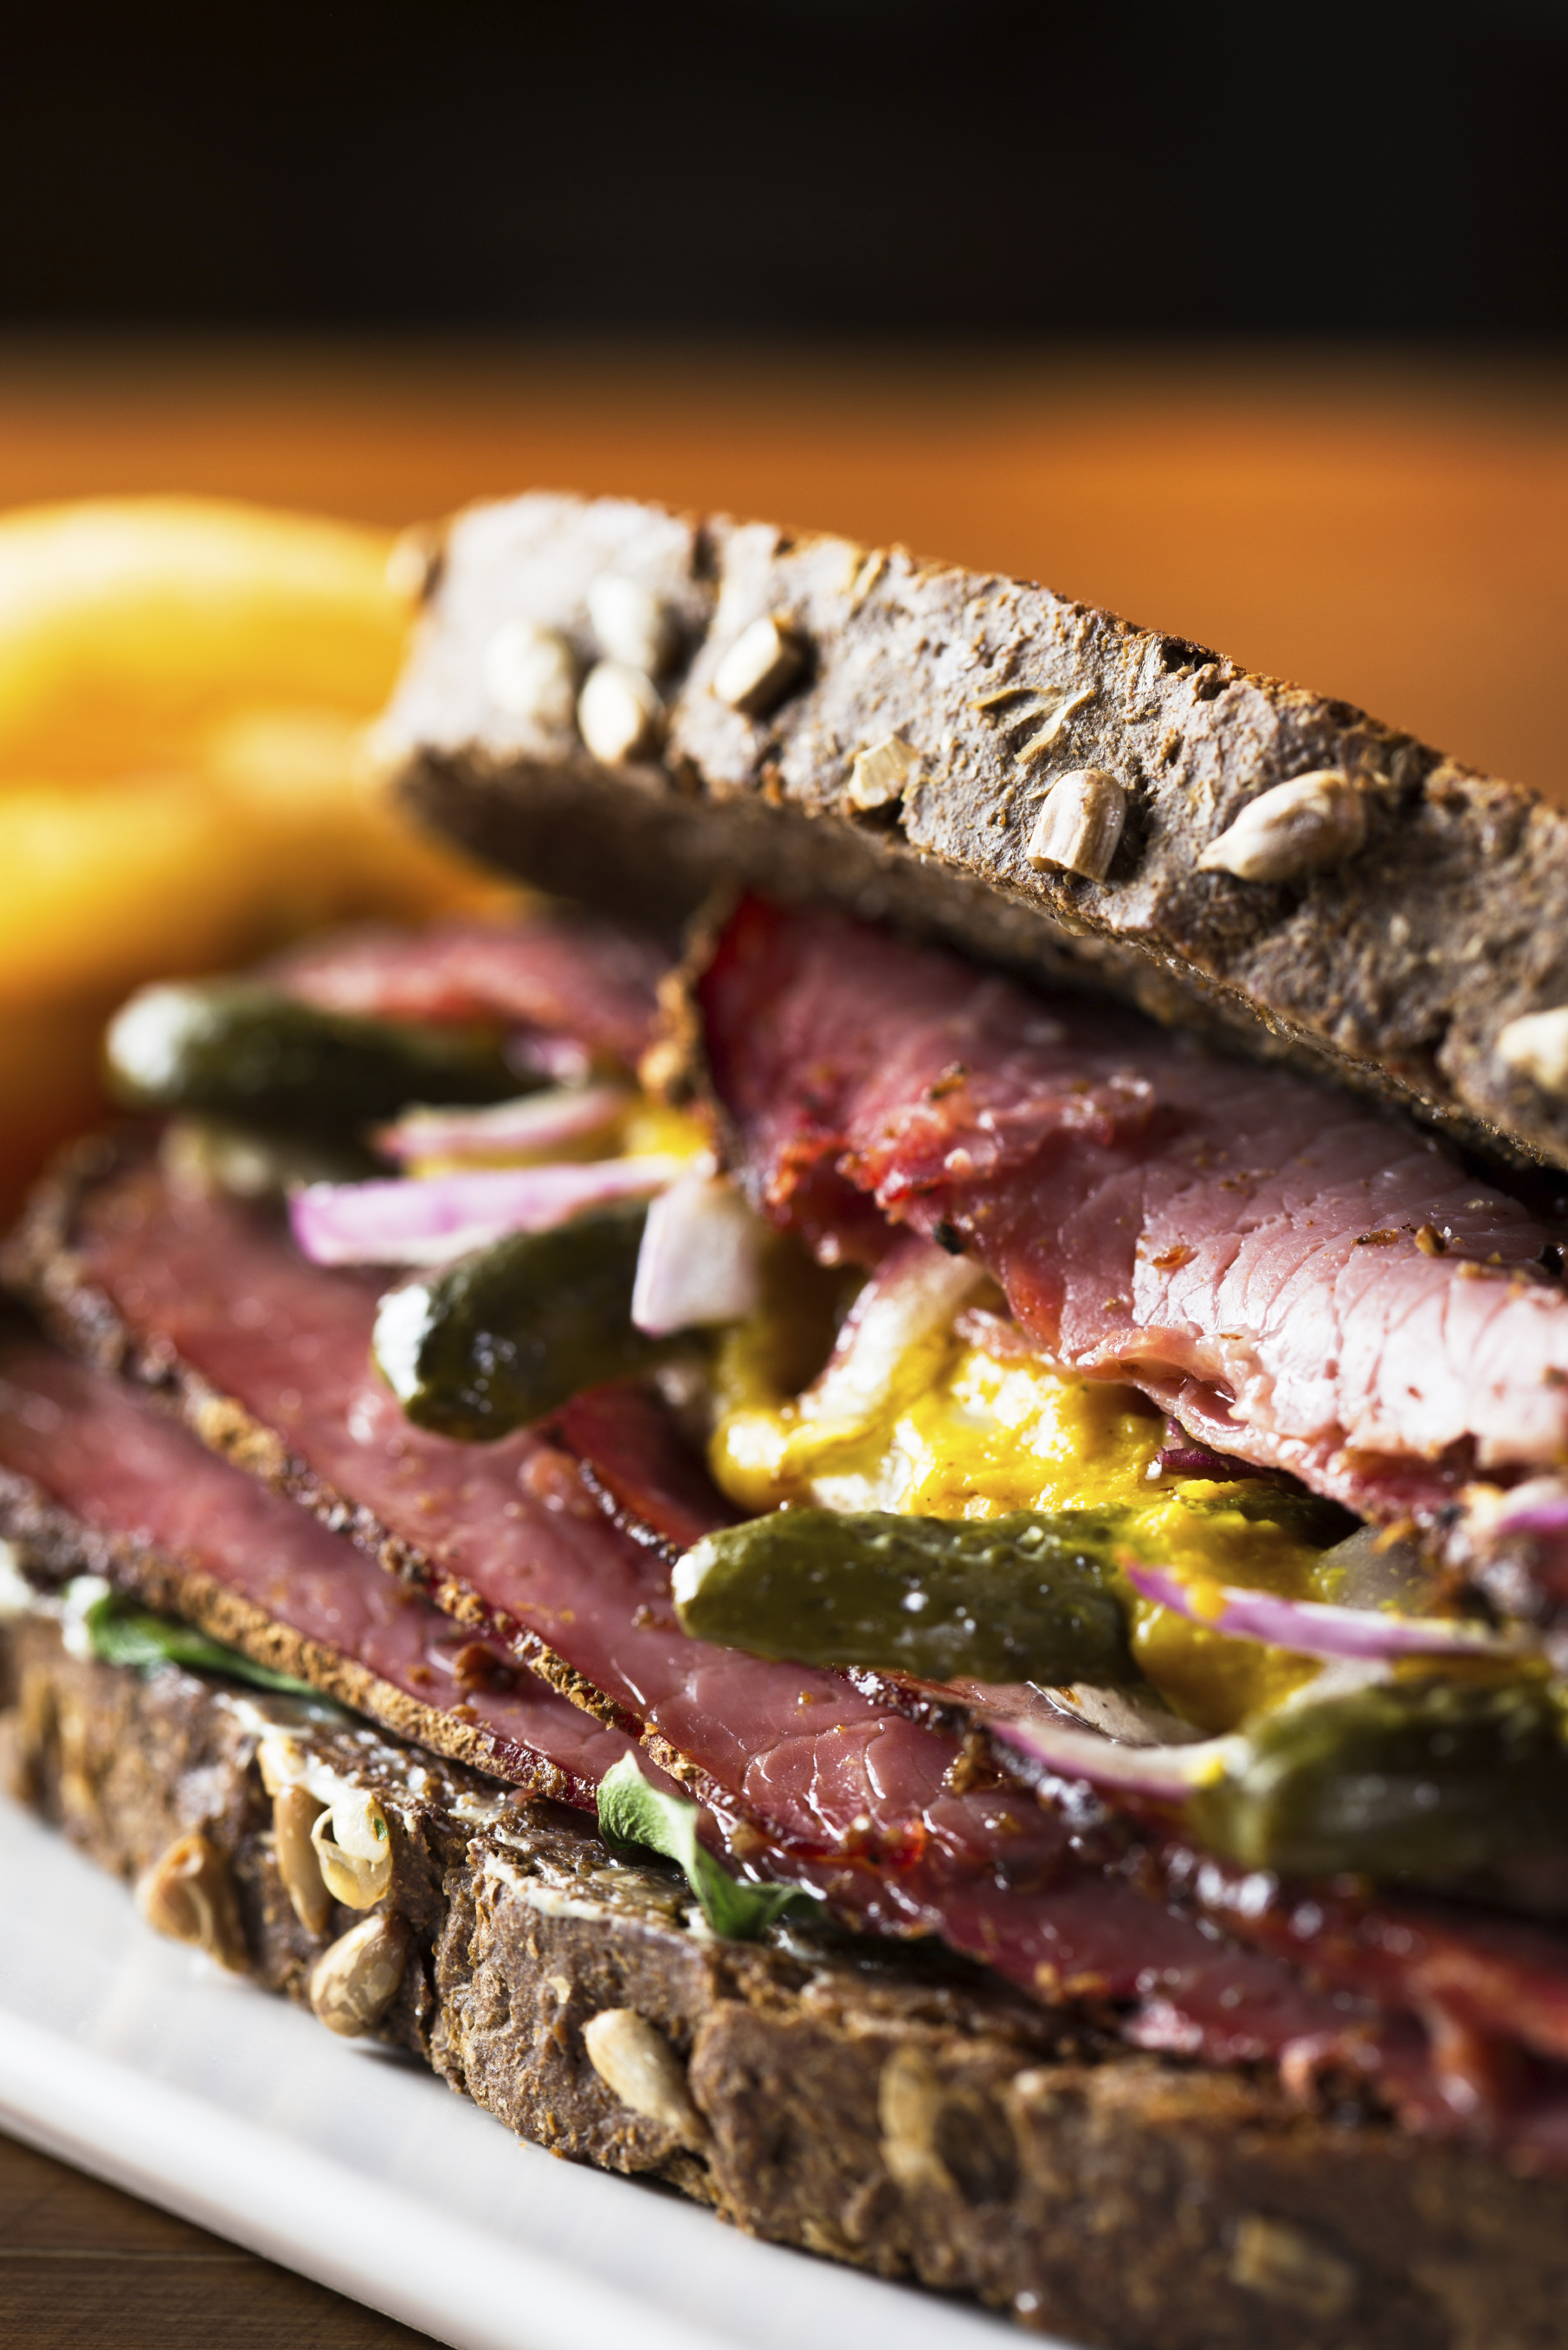 Delicious pastrami sandwich with french fries ready to eat.